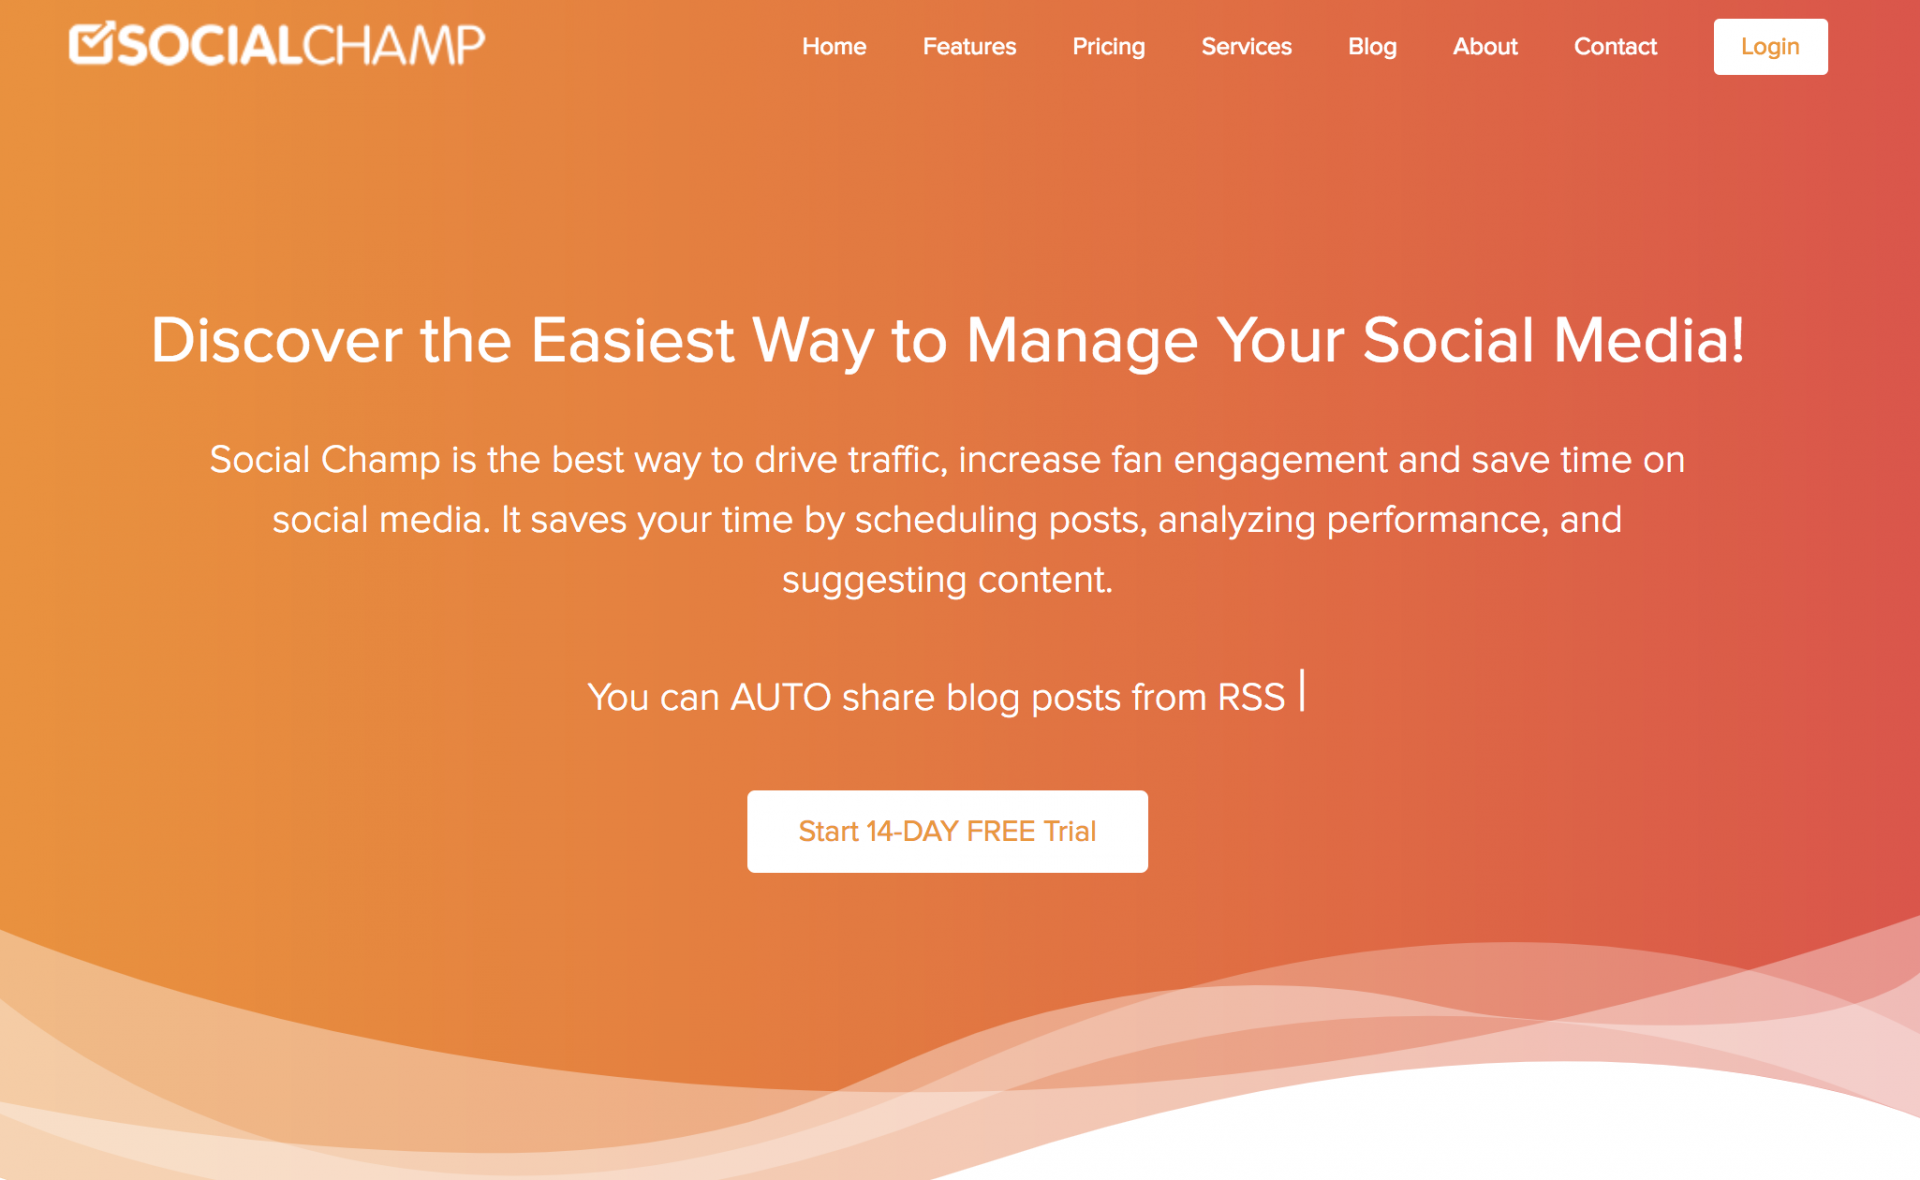 The SocialChamp Home page